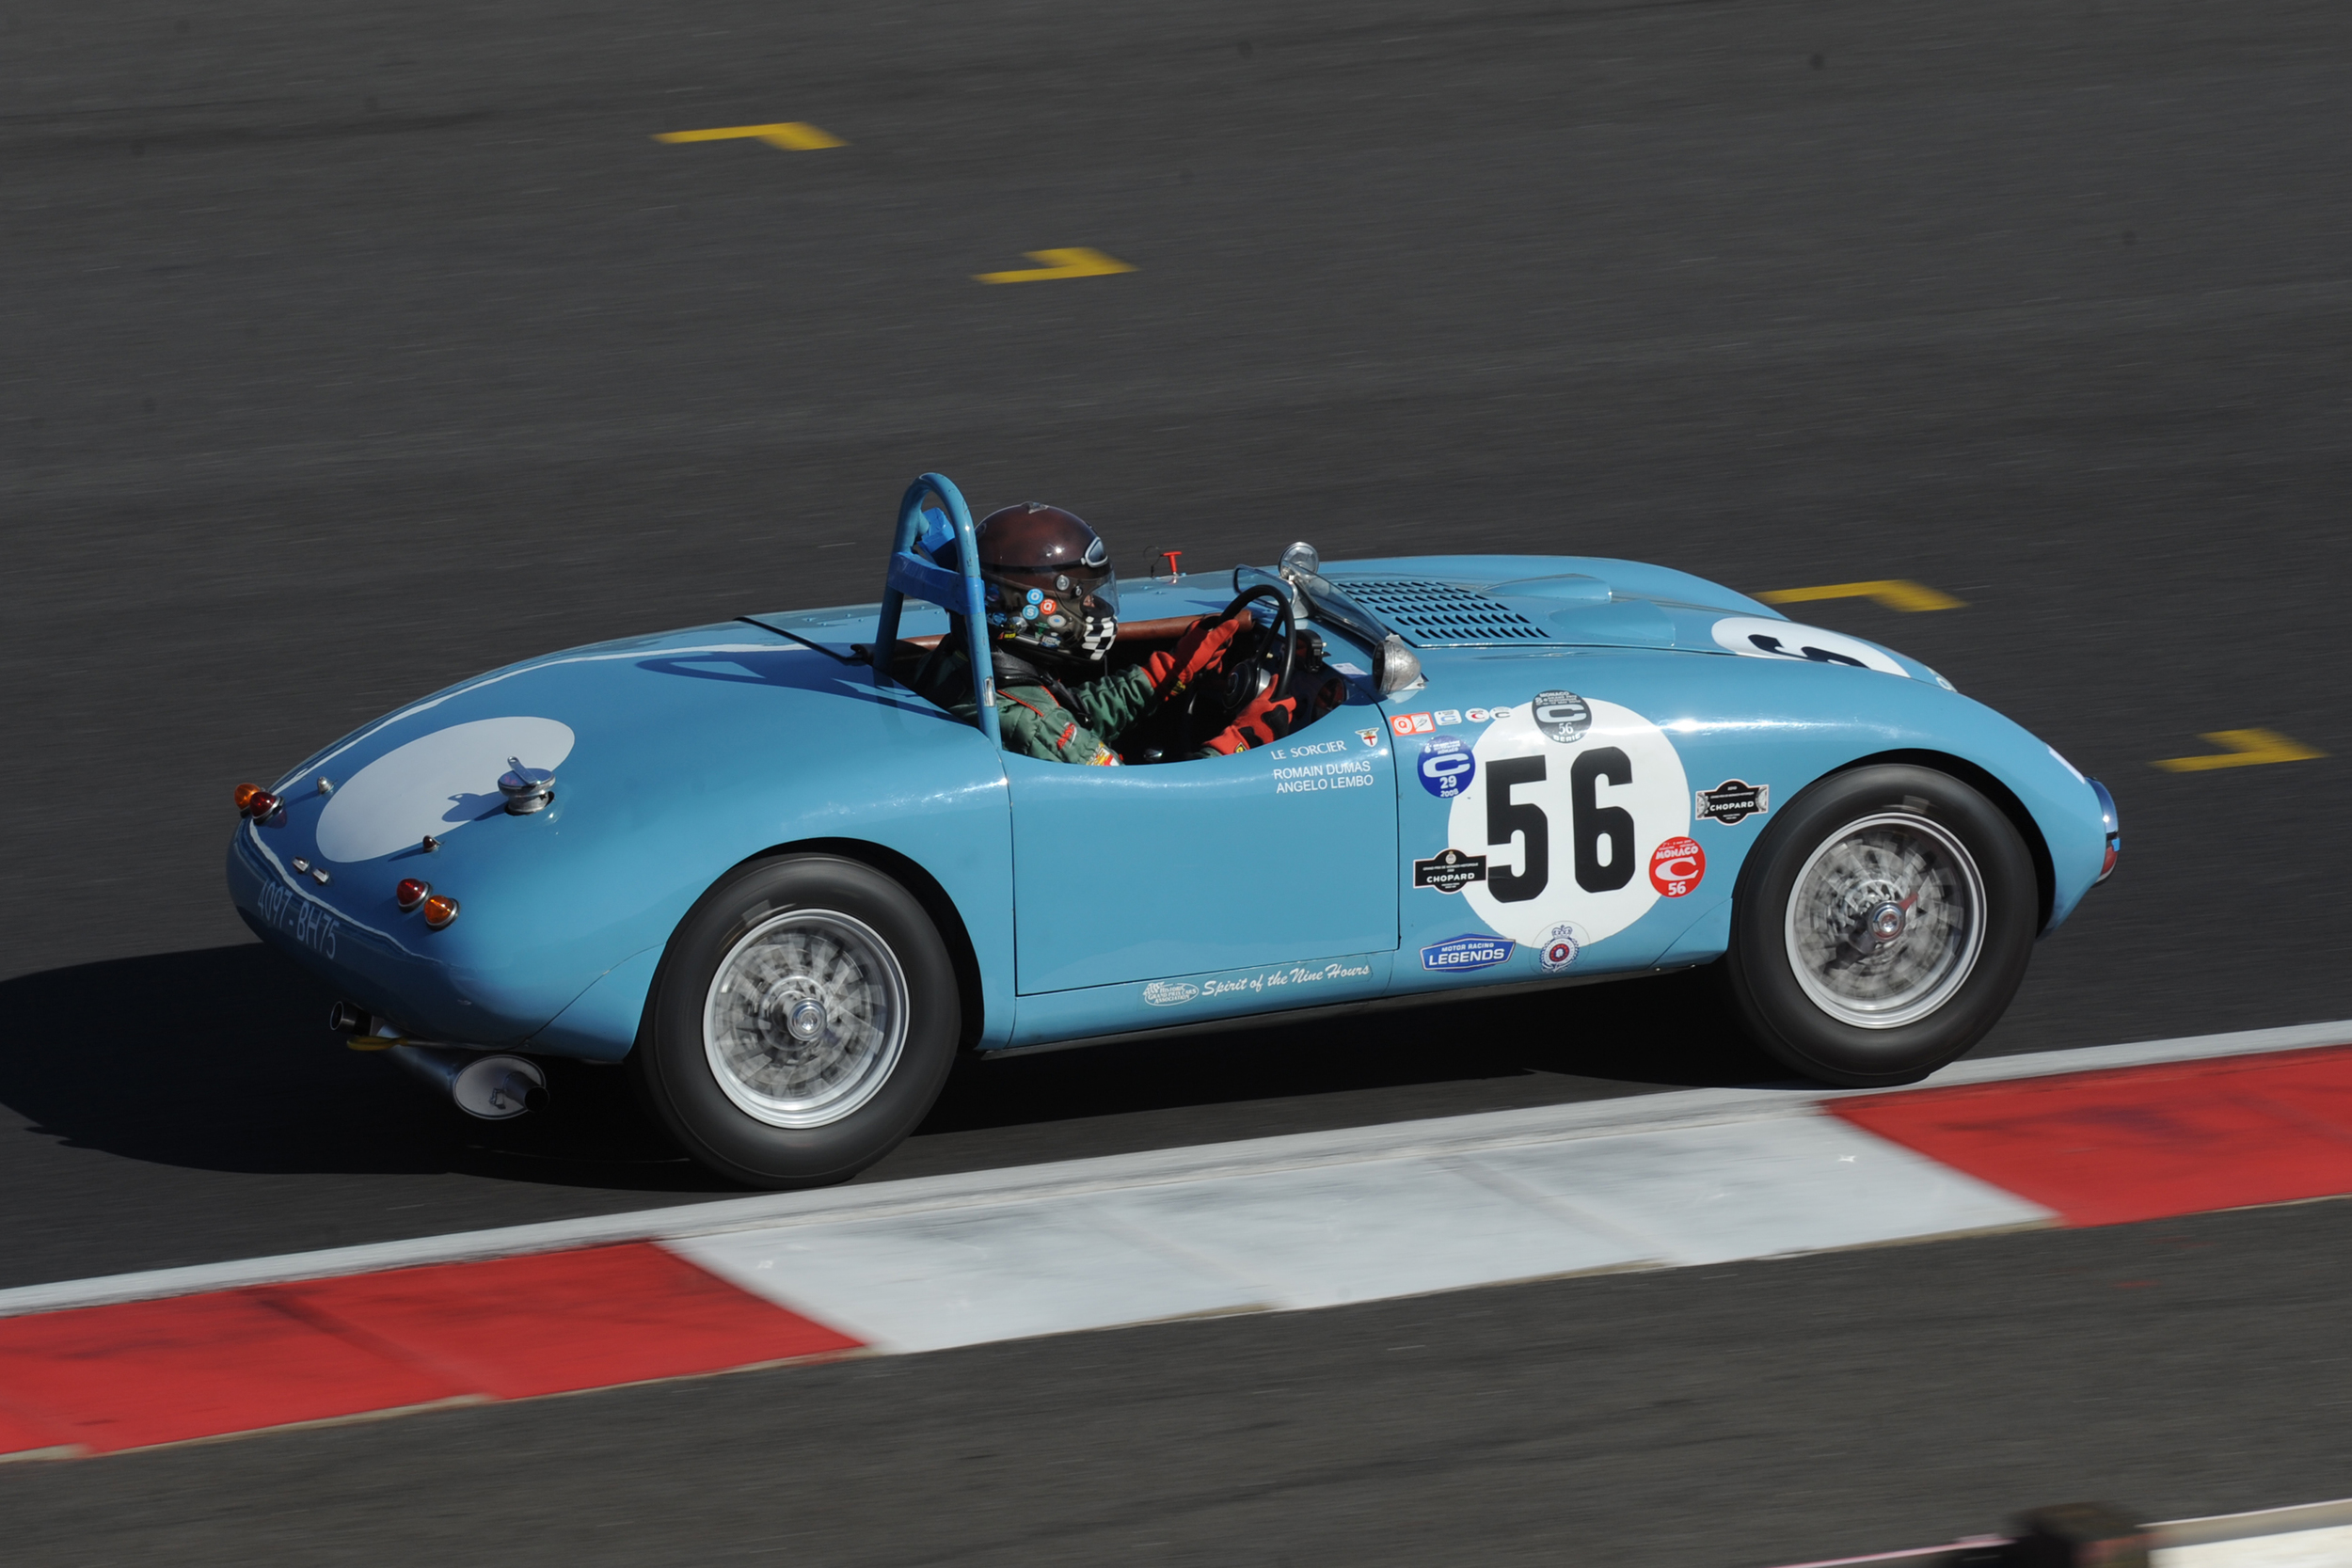 First time in the race was eddie Mcguire in his Gordini T23S                                 Photo - Jeff Bloxham